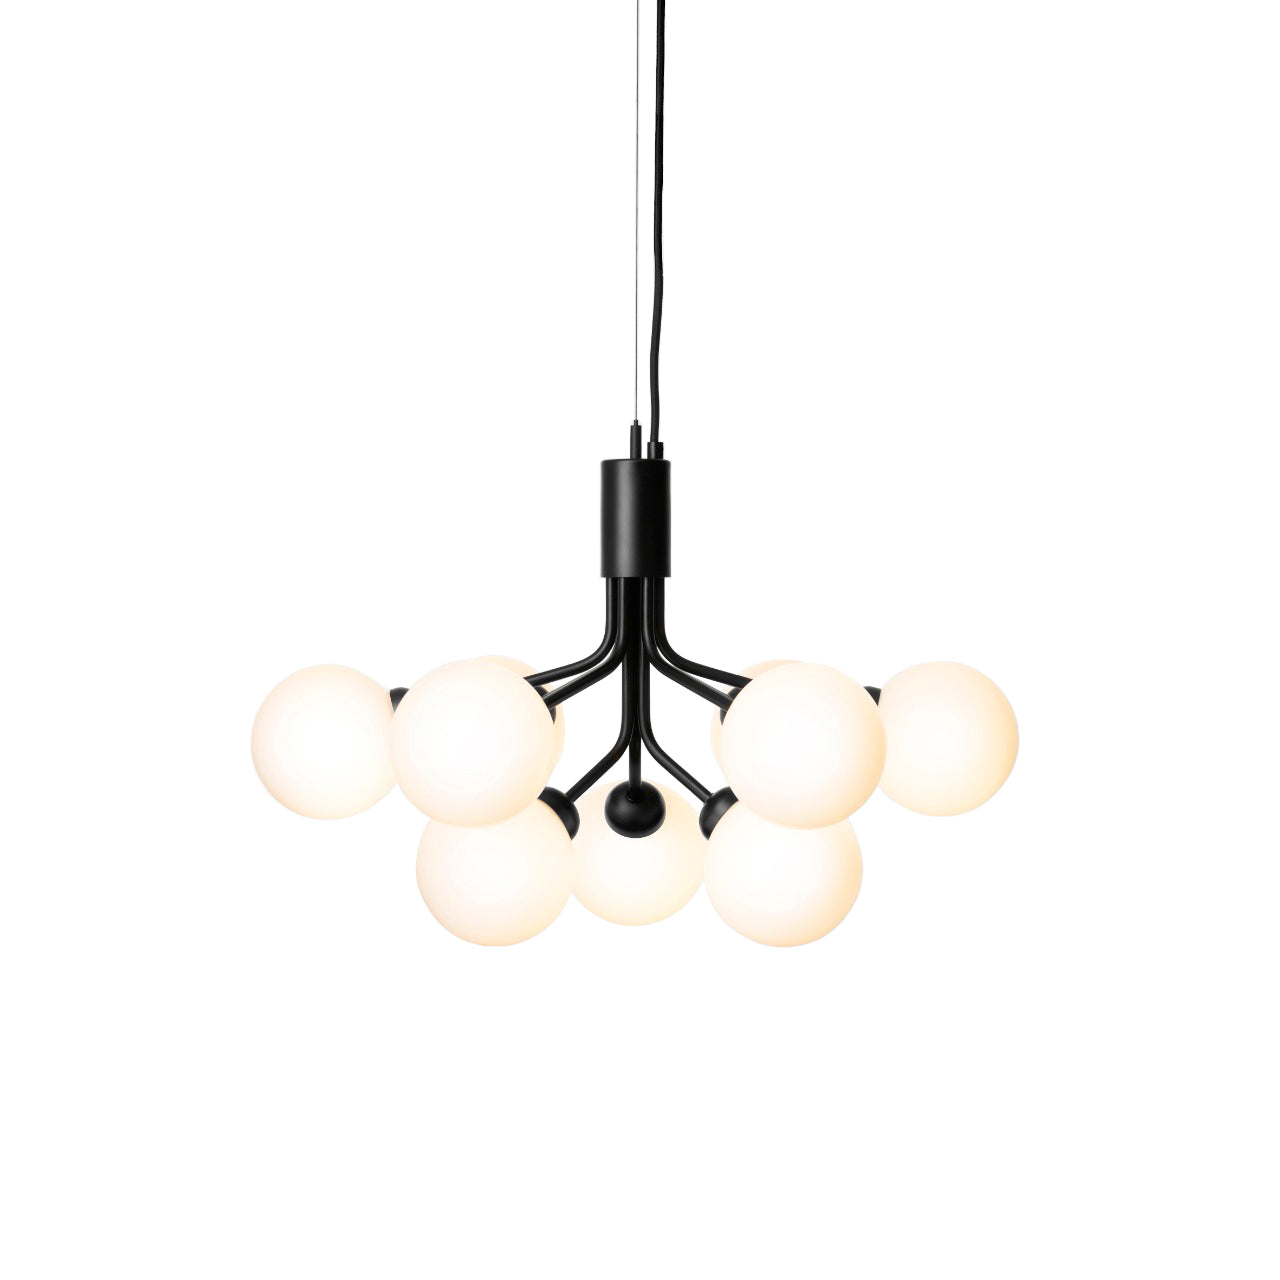 Apiales 9 Chandelier: Satin Black + Opal White